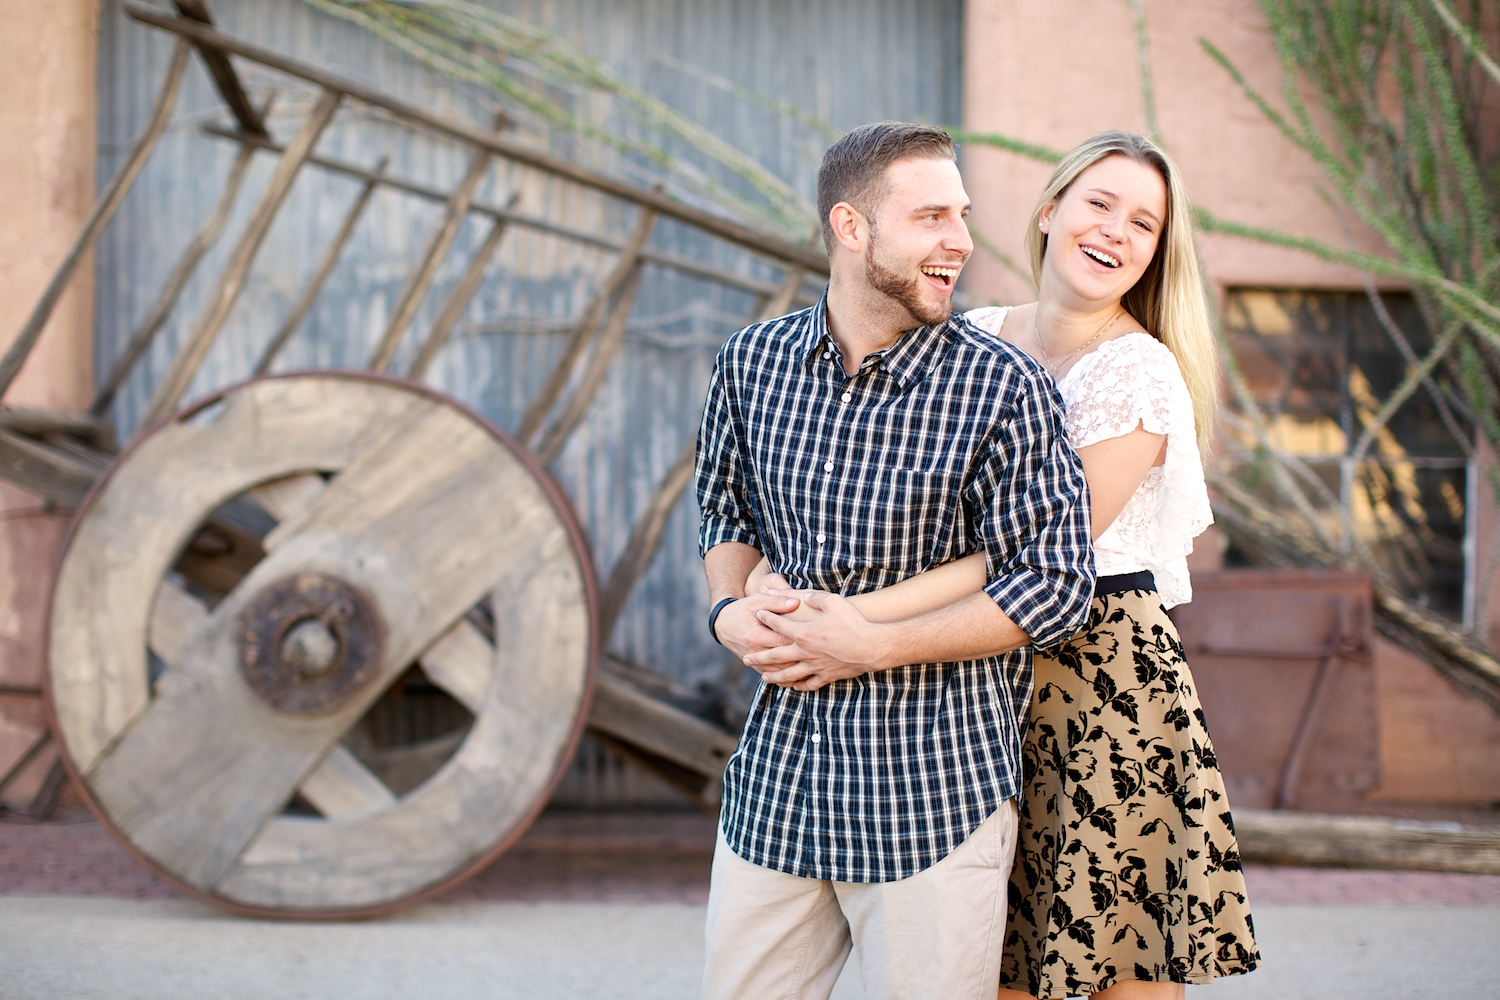 Rustic backdrop @ Old Town Scottsdale